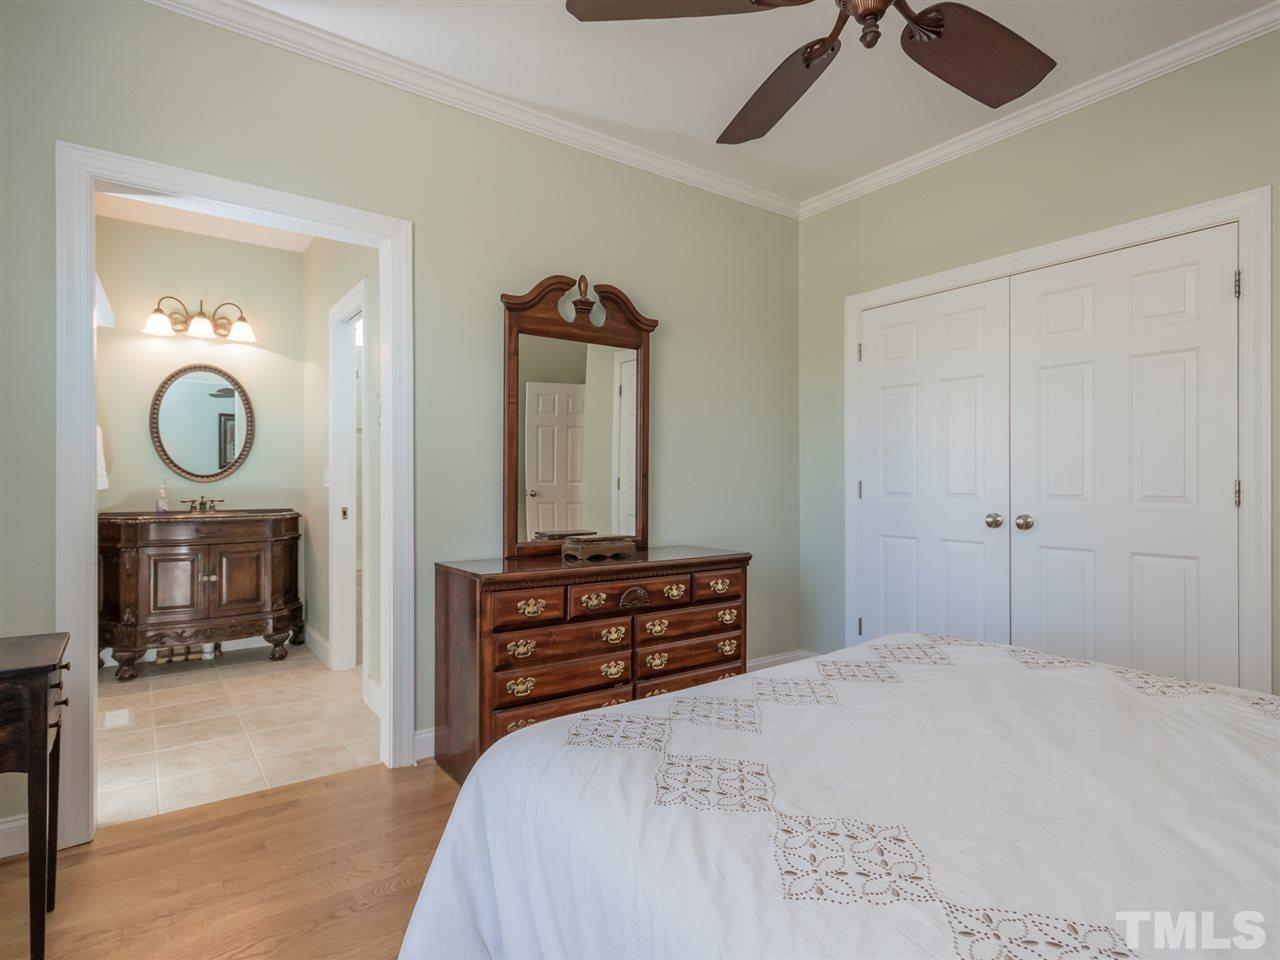 Two guest bedrooms on the main level with compartmented bath in-between, each with their own vanity area.